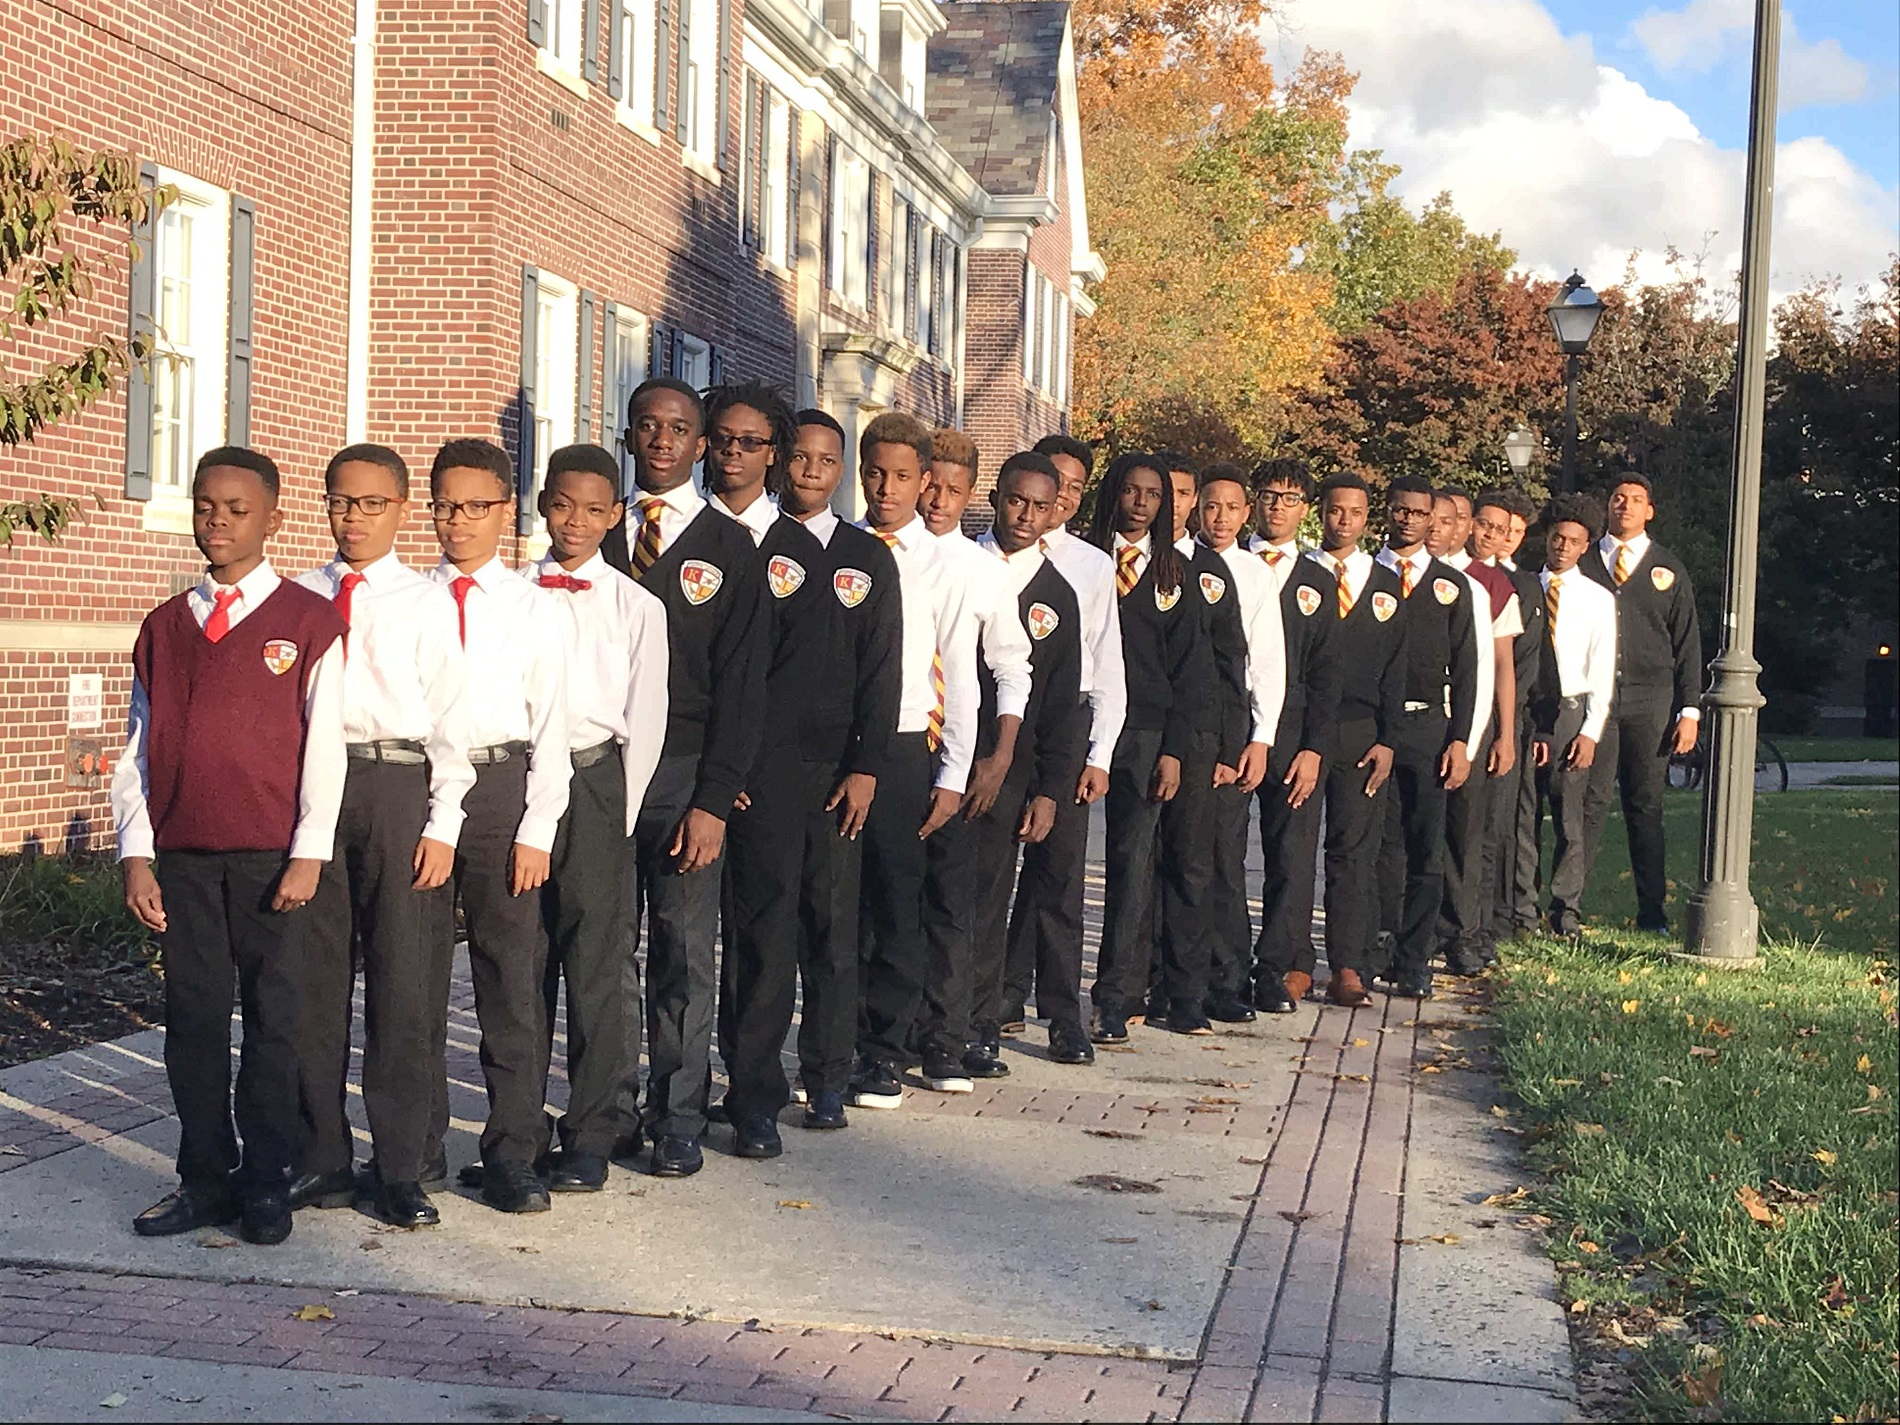 Kappa League Young men standing in a line